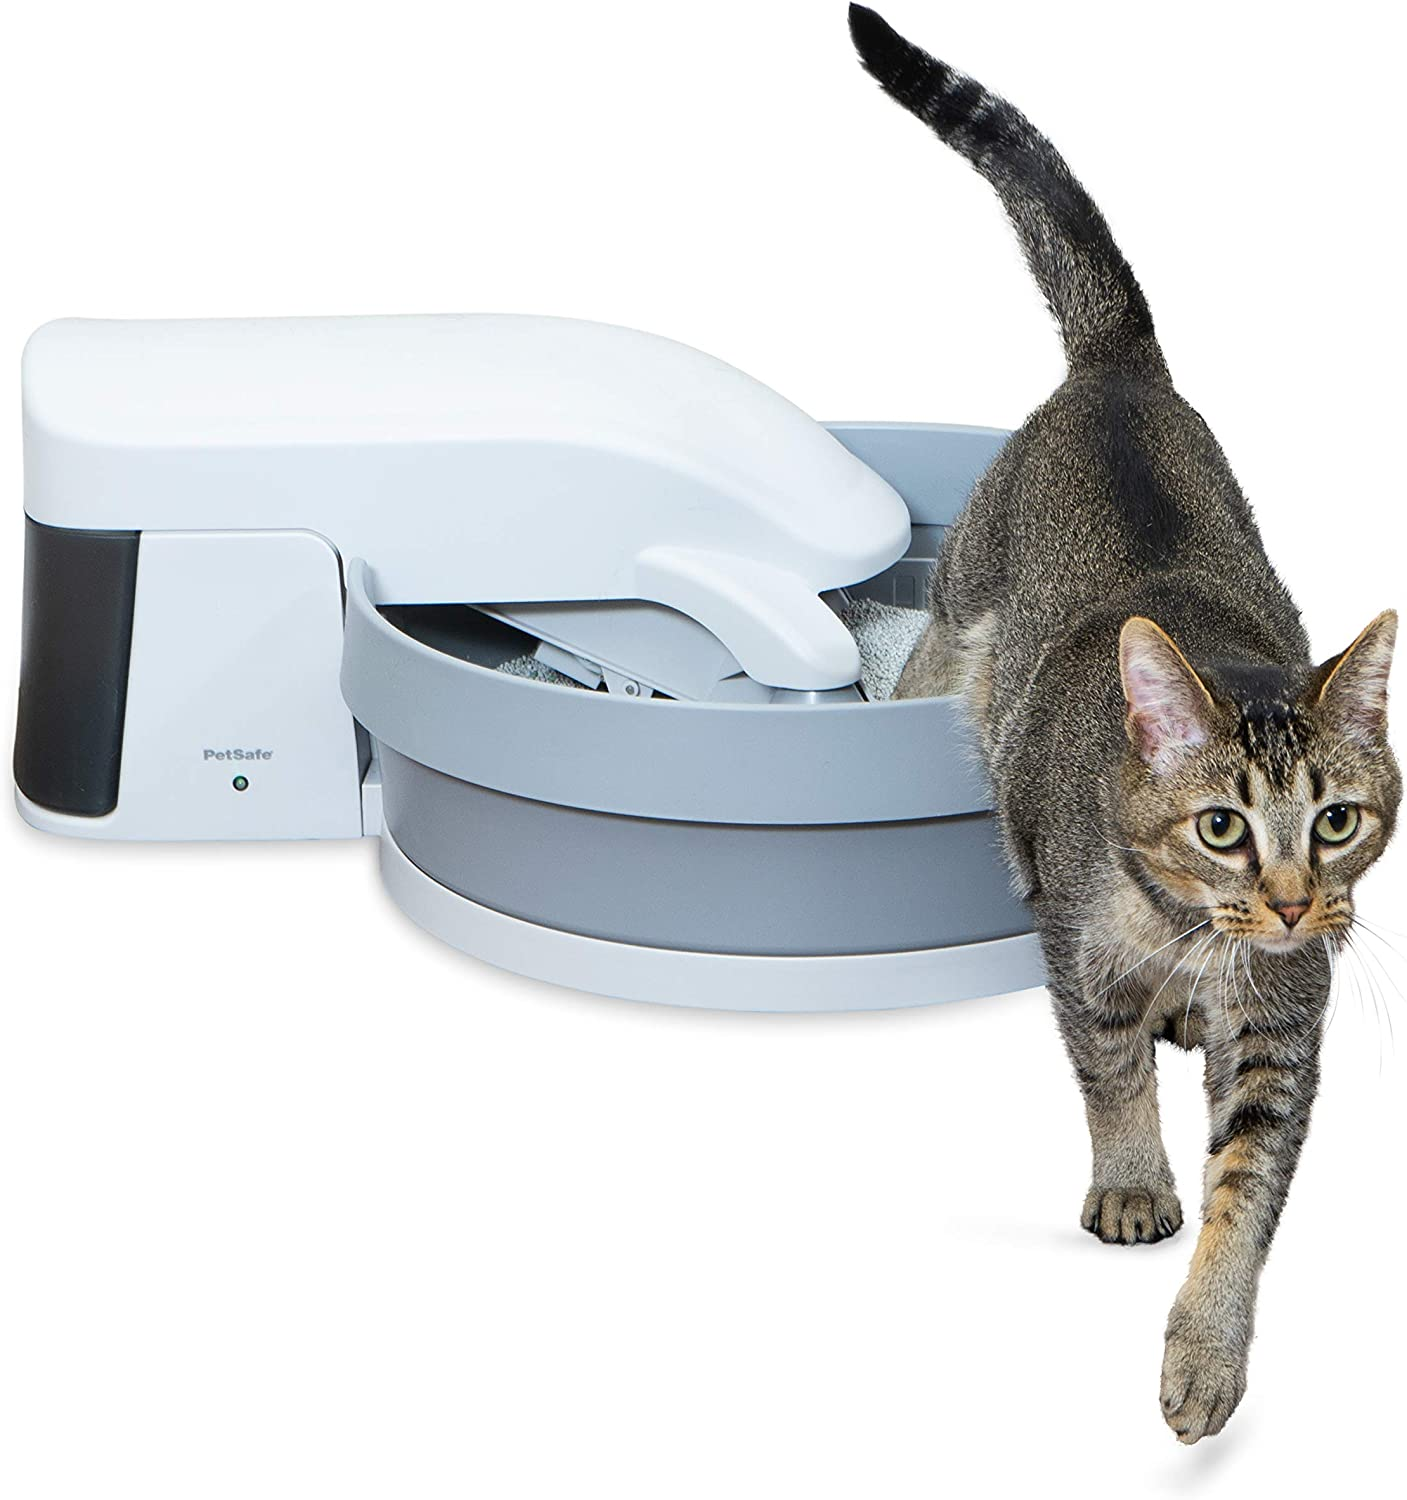 Top 10 Best Self Cleaning Litter Box For Large Cats [Updated December 2020] 7